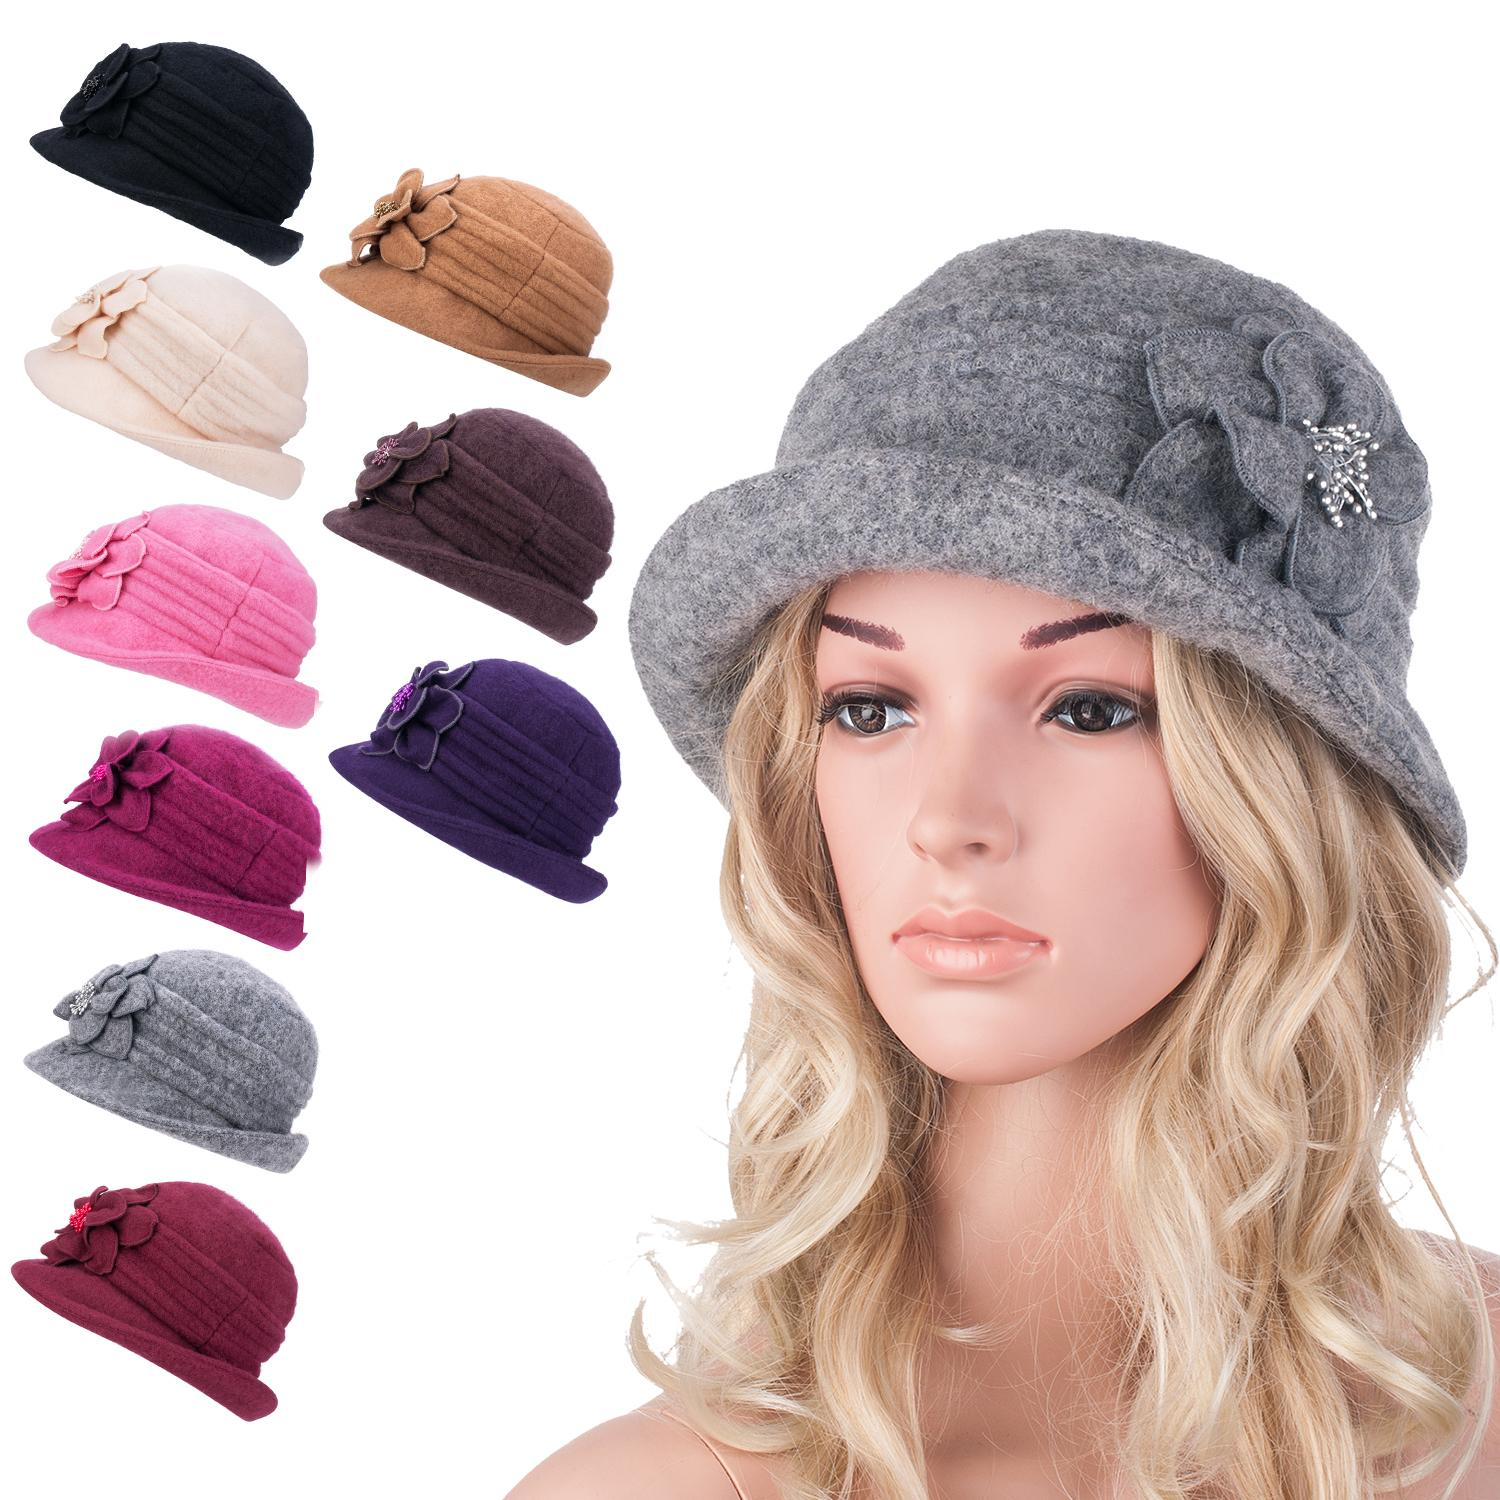 f43bc83b2e8 2019 Womens Gatsby Style 1920s Flapper Girl Winter Wool Cap Beret Beanie  Cloche Bucket Formal Hat A299 From Spowwow